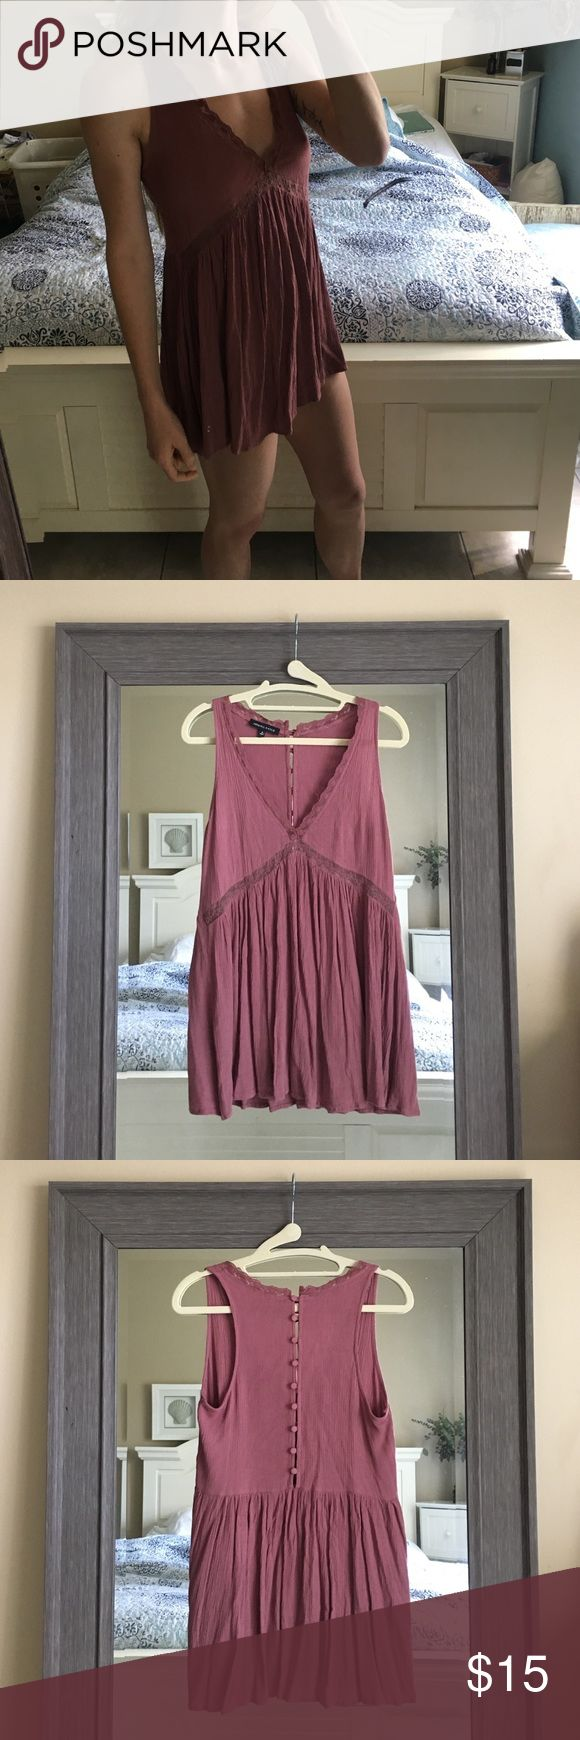 Kendall & Kylie Babydoll Dress Super cute babydoll dress! i've worn it once, it's just too short for my comfort ☺️ could also be worn as a tunic over jeans!! Kendall & Kylie Dresses Mini